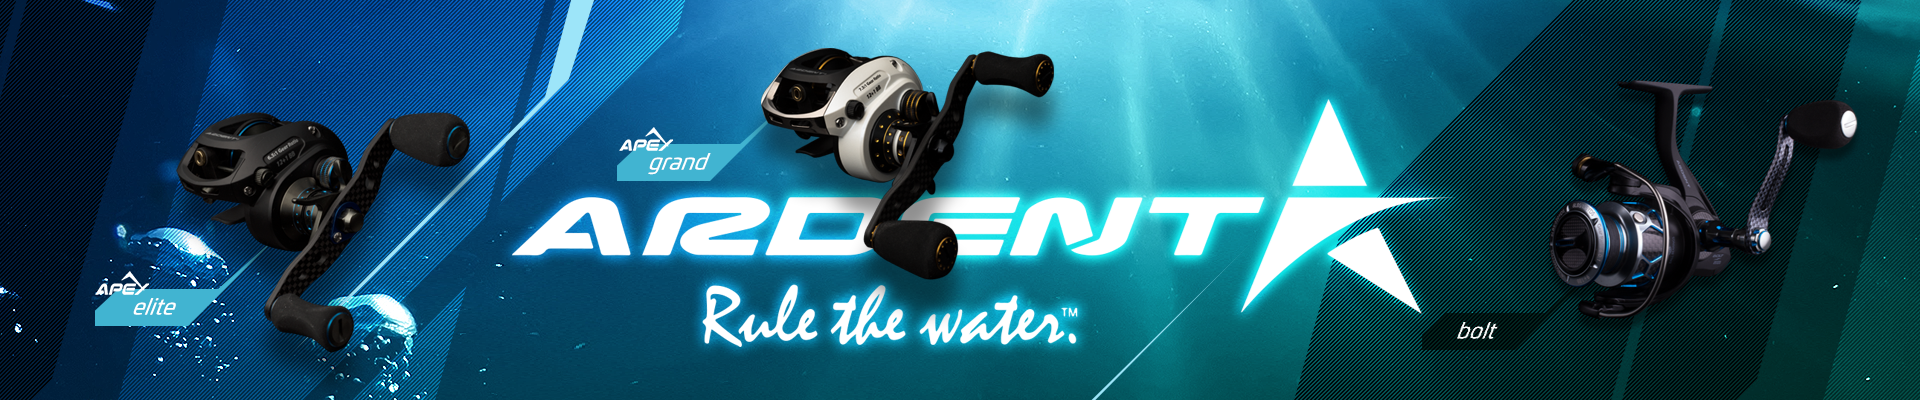 Casting reels, ardent, shimano, daiwa, mulinelli ardent, spinning, casting, bassfishing